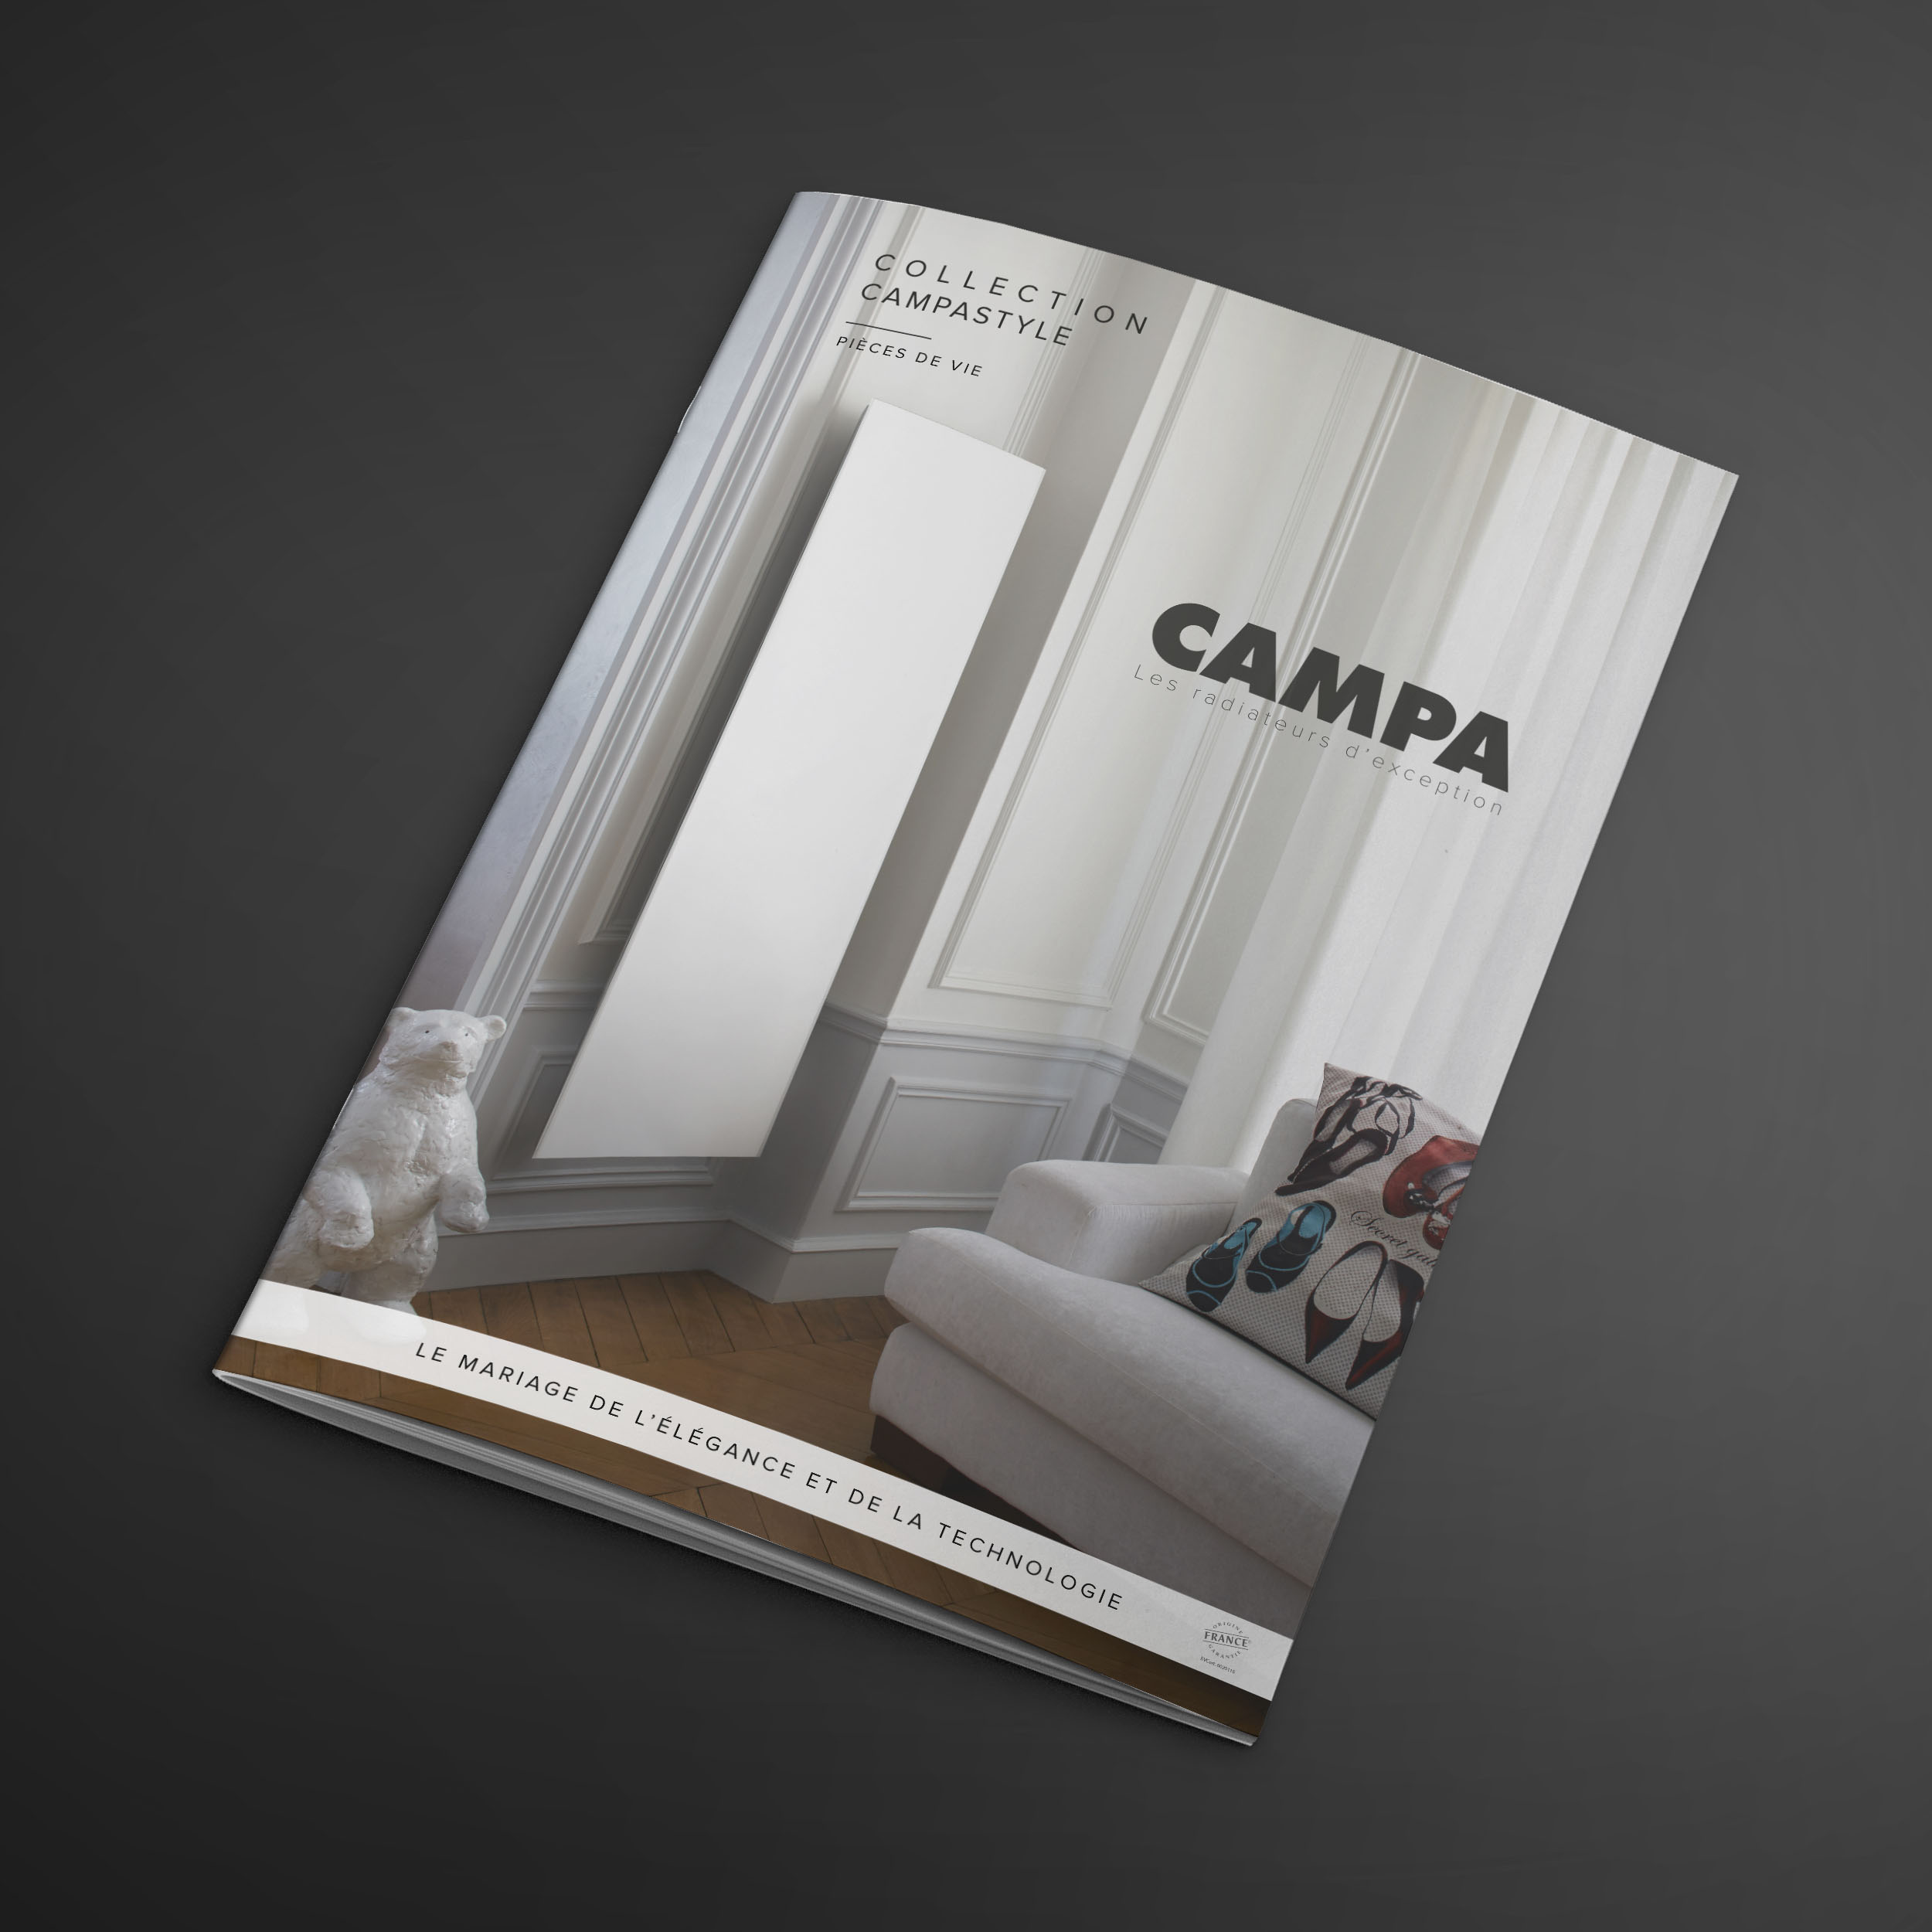 CAMPASTYLE LAVE 3.0